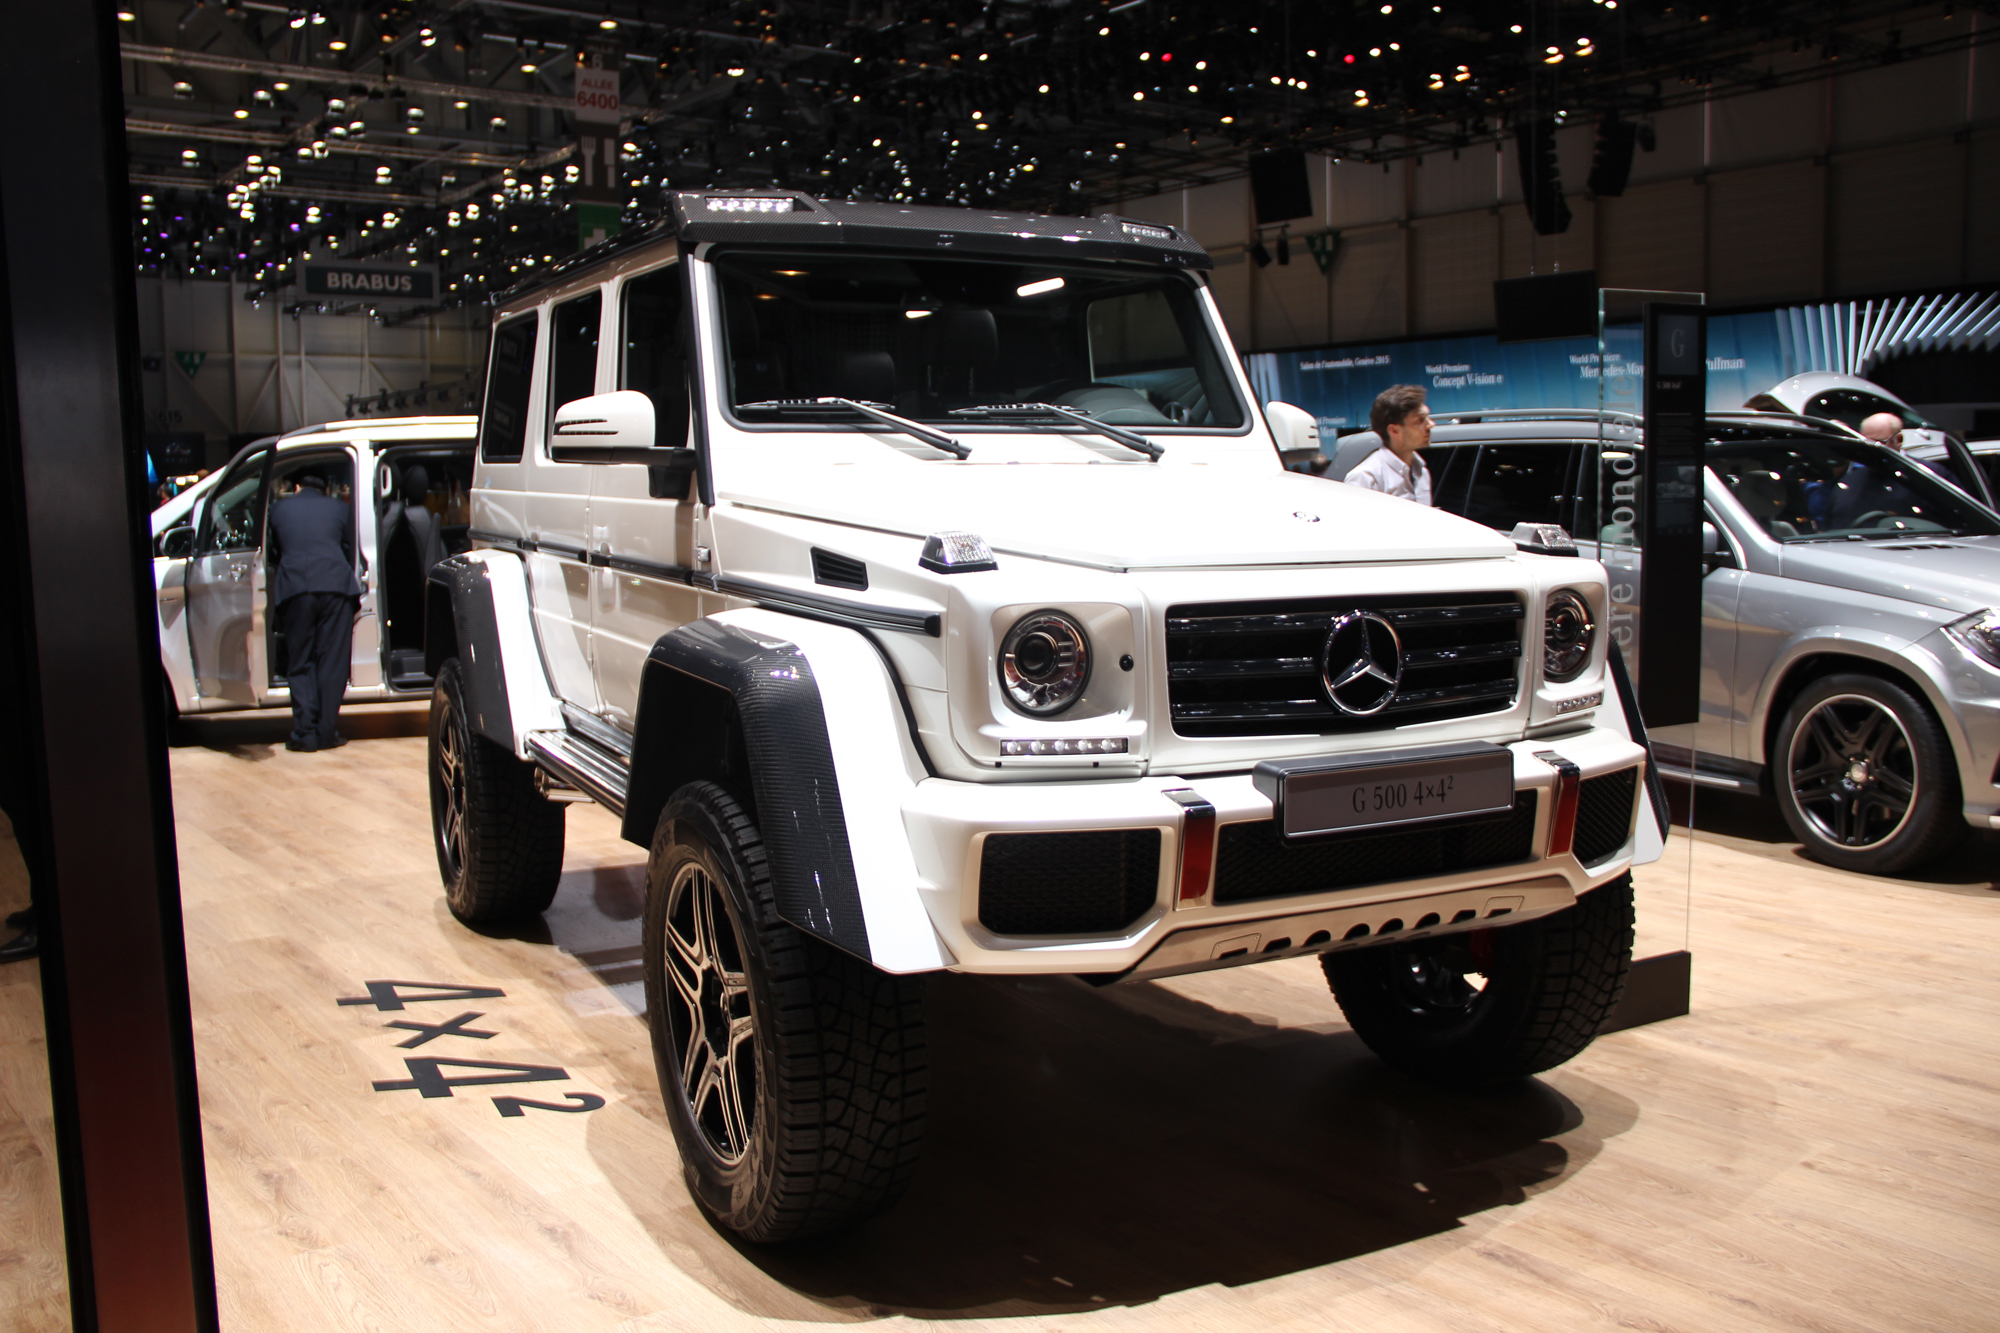 mercedes g500 4x4 squared flexes off road muscle. Black Bedroom Furniture Sets. Home Design Ideas